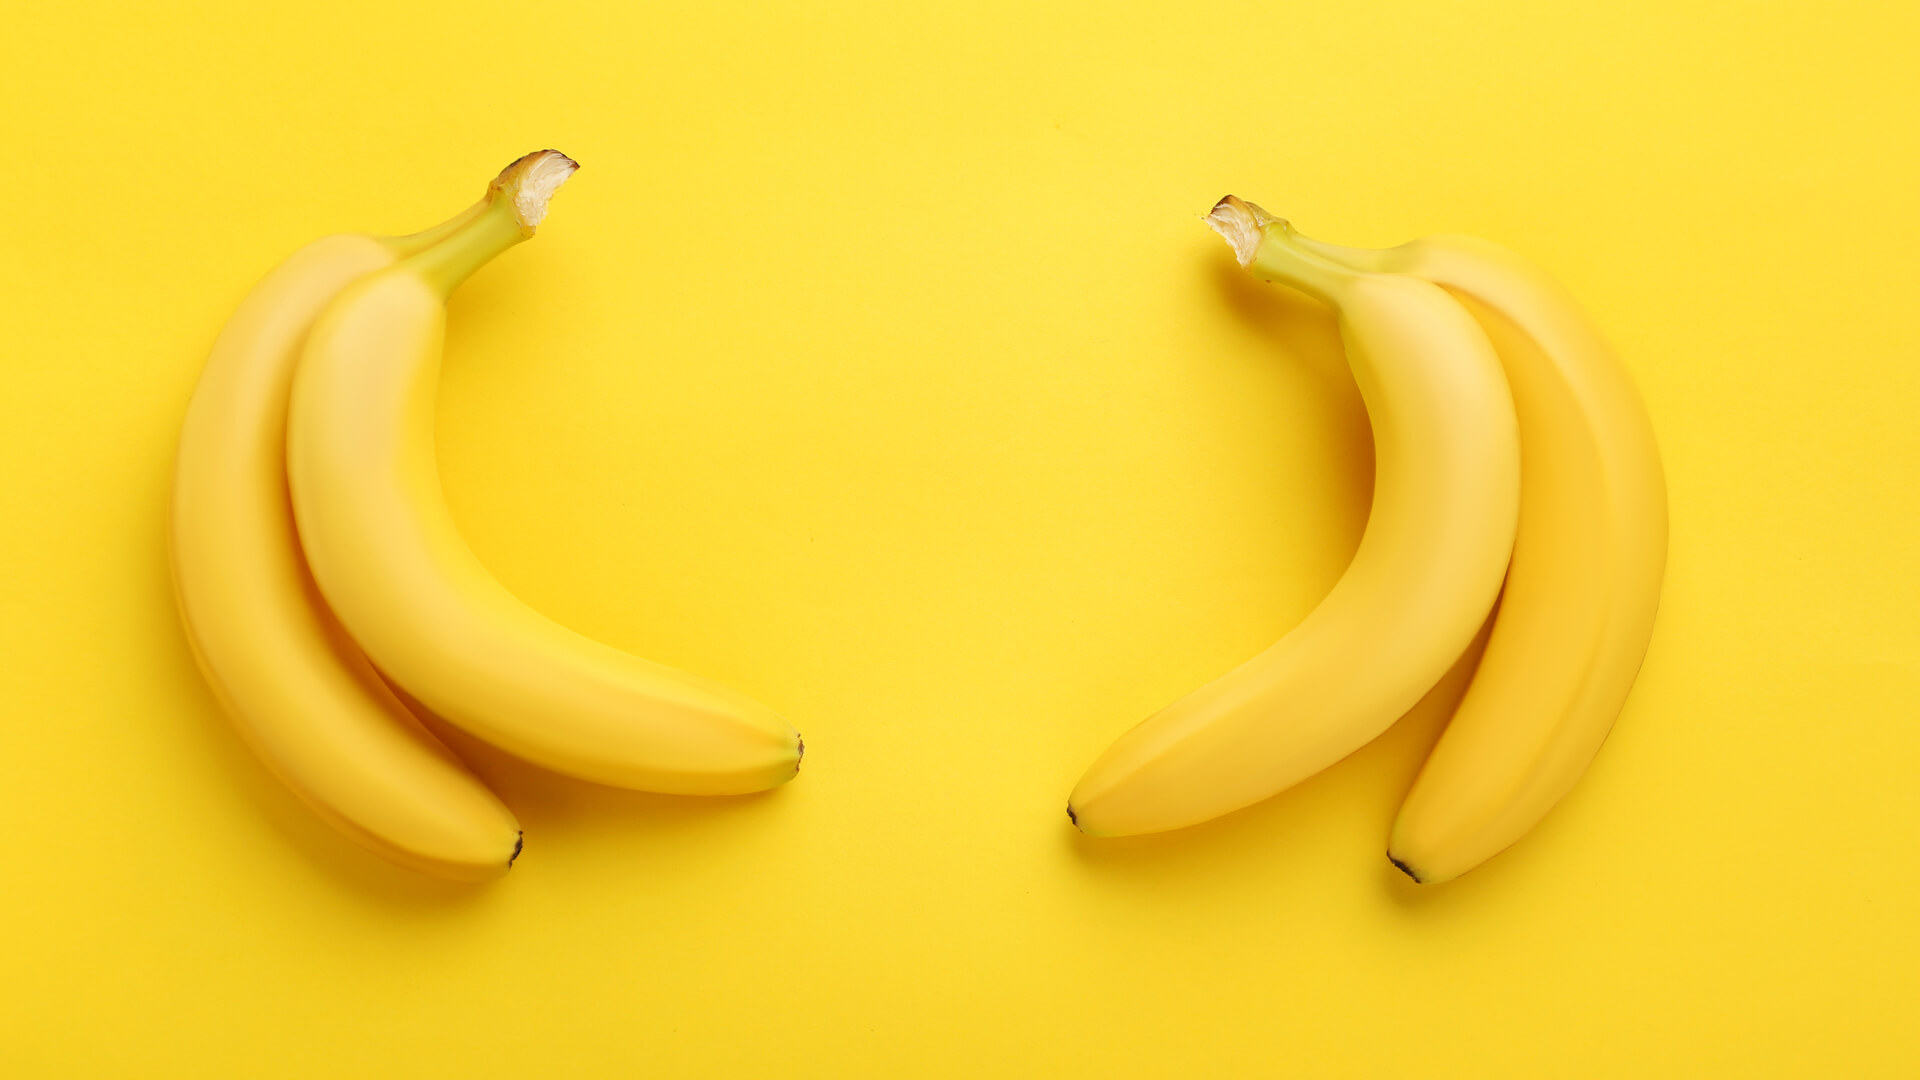 Two Bananas on a Yellow Background